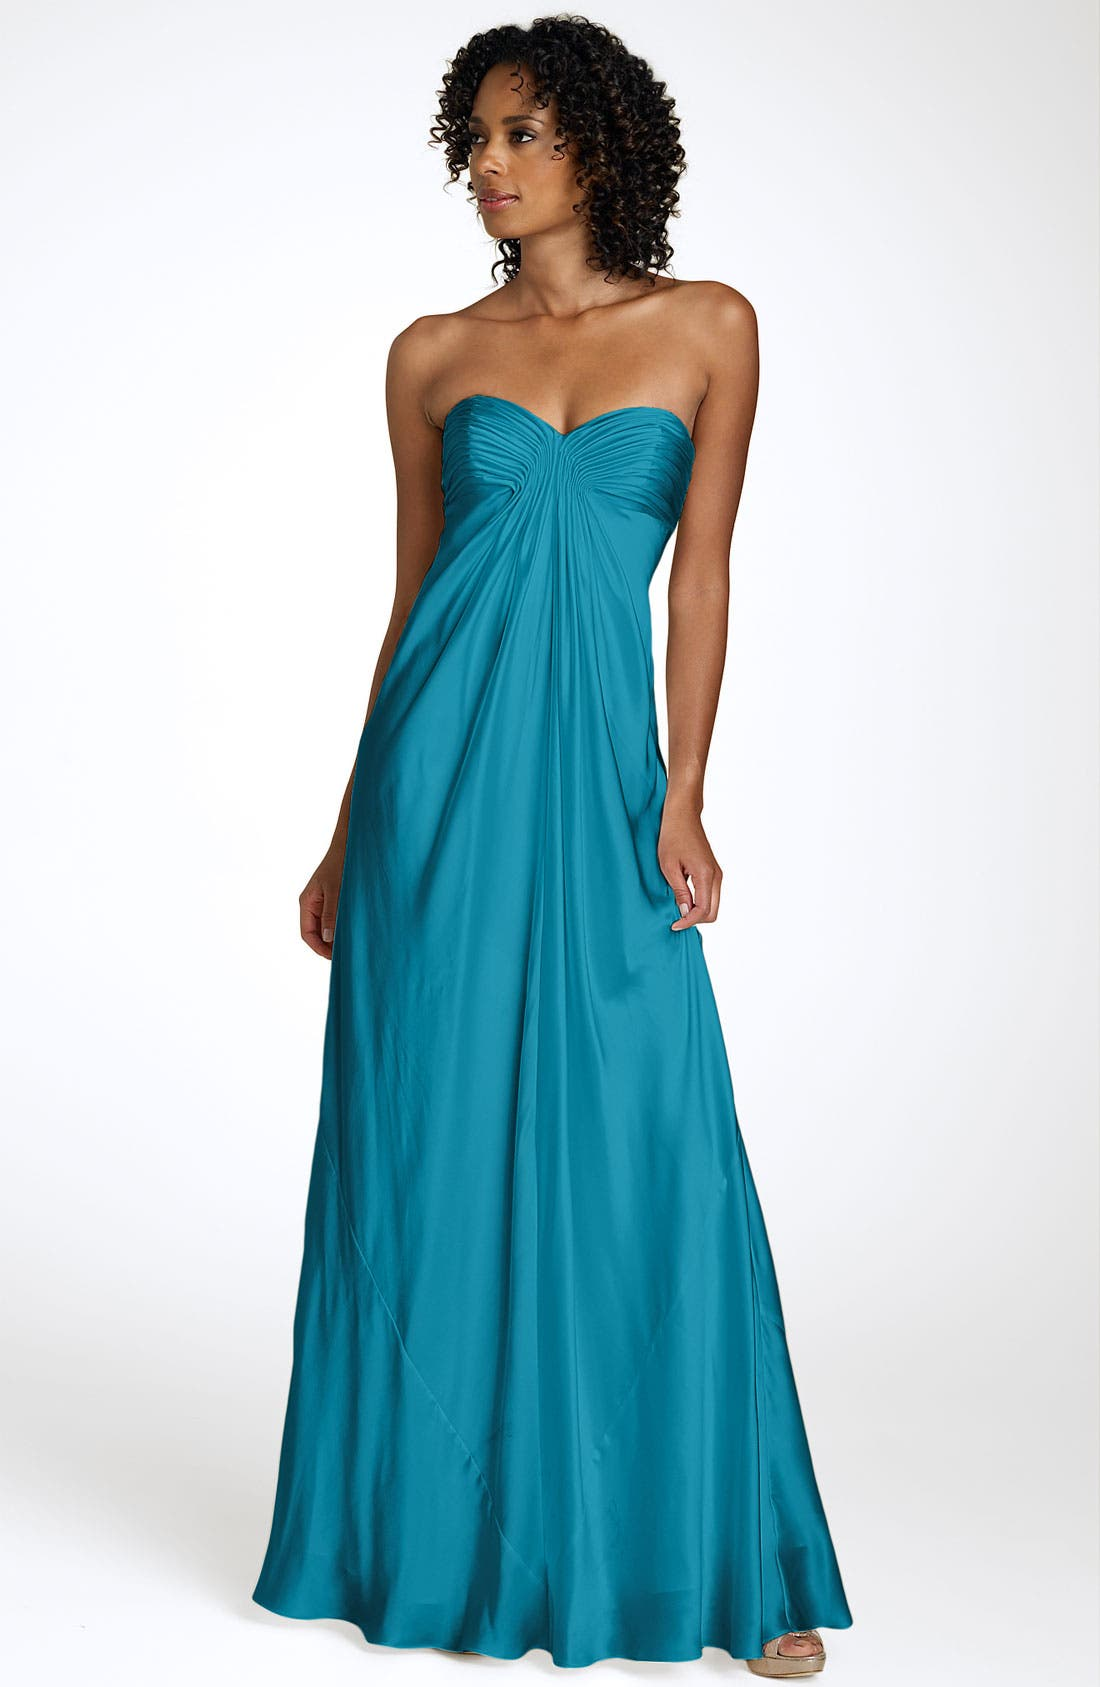 Alternate Image 1 Selected - Laundry by Shelli Segal Strapless Charmeuse Gown